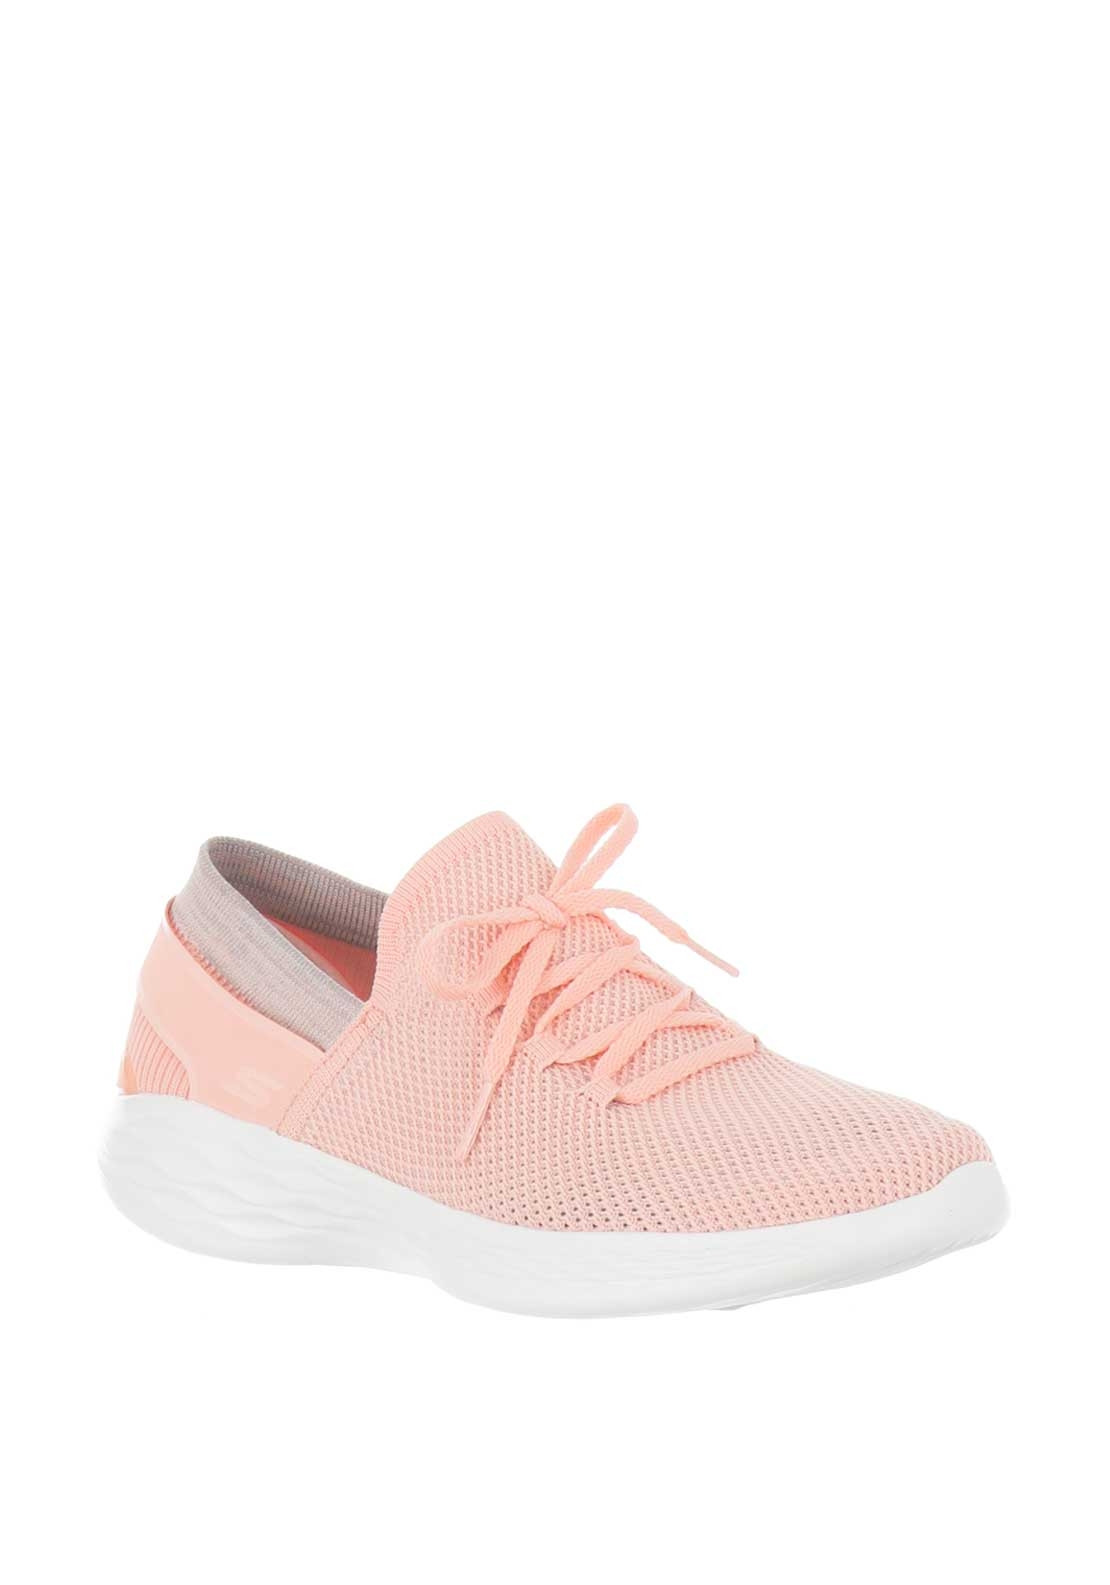 Skechers Womens You Spirit Knit Trainers, Peach